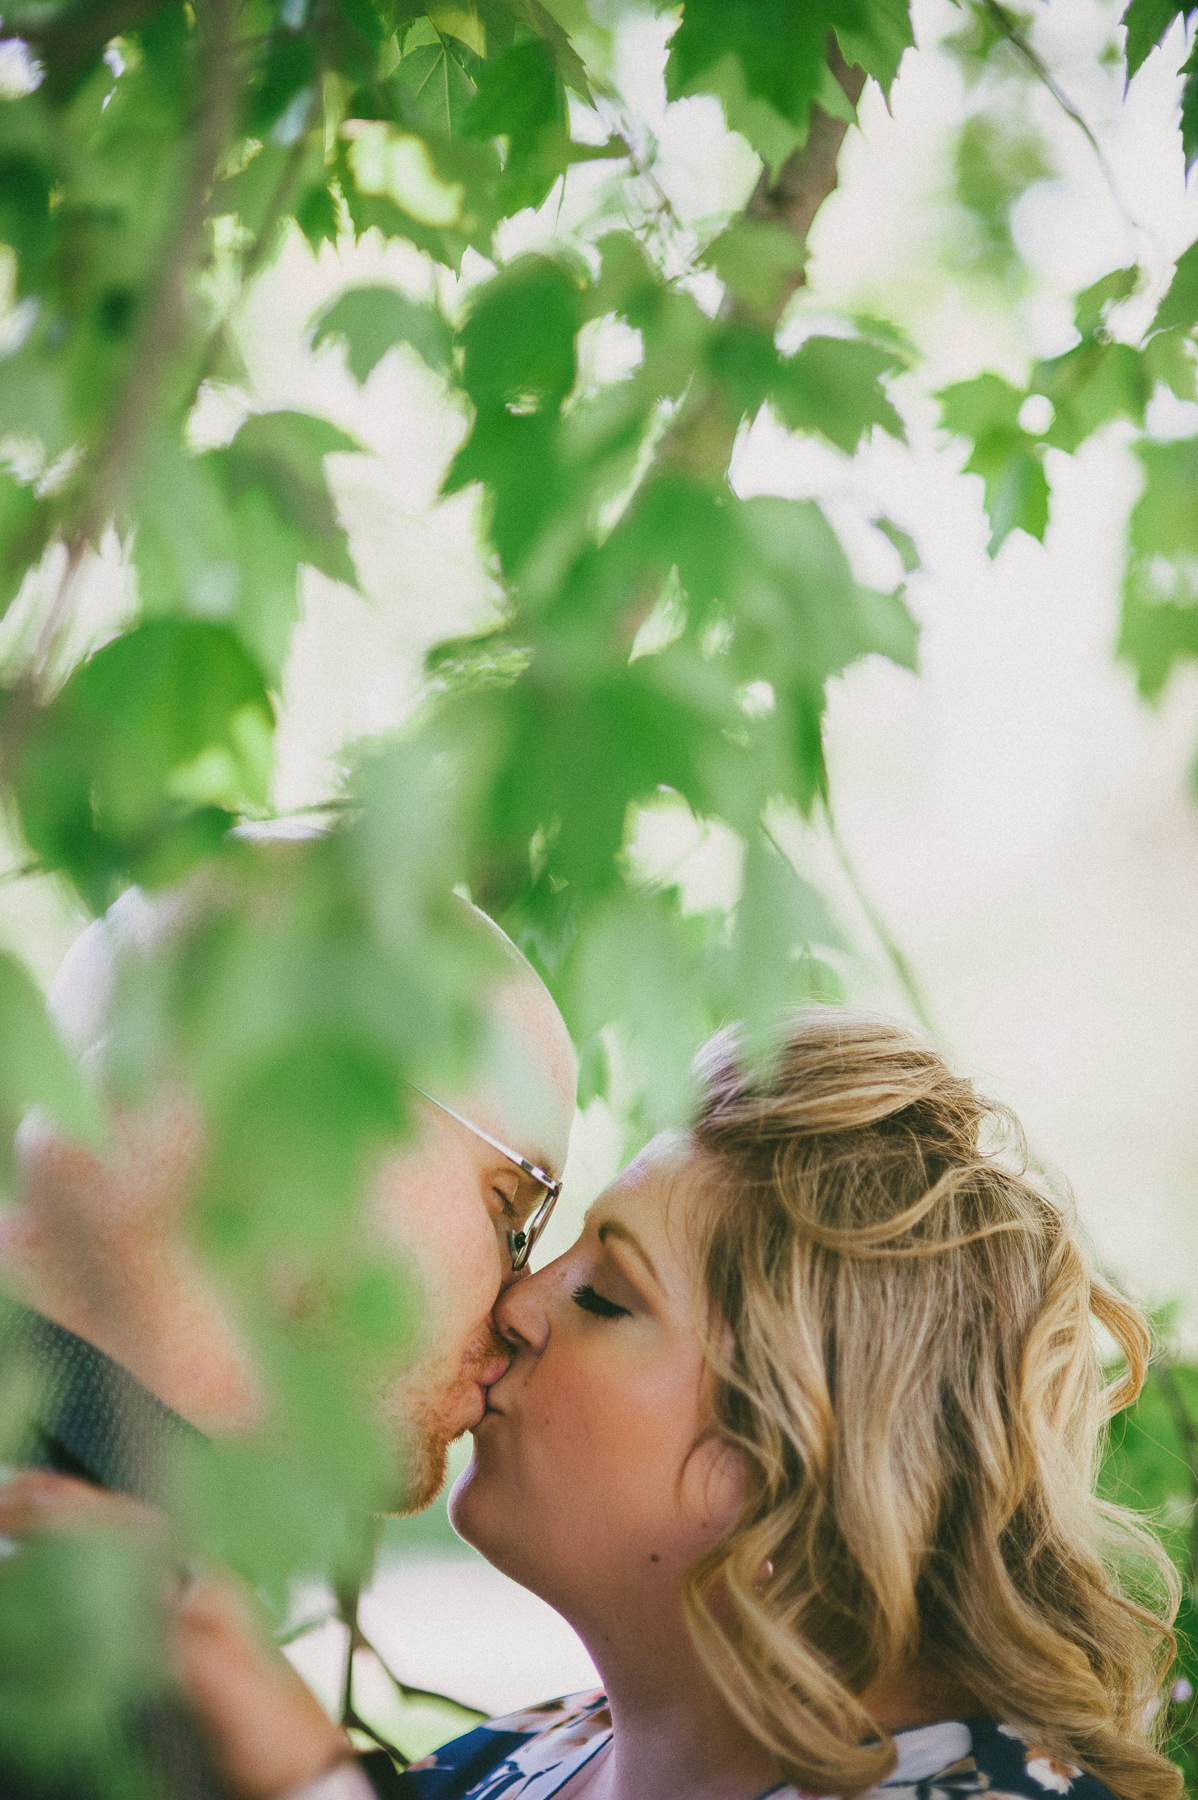 breighton-and-basette-photography-copyrighted-image-blog-jennifer-and-sean-engagement-027.jpg